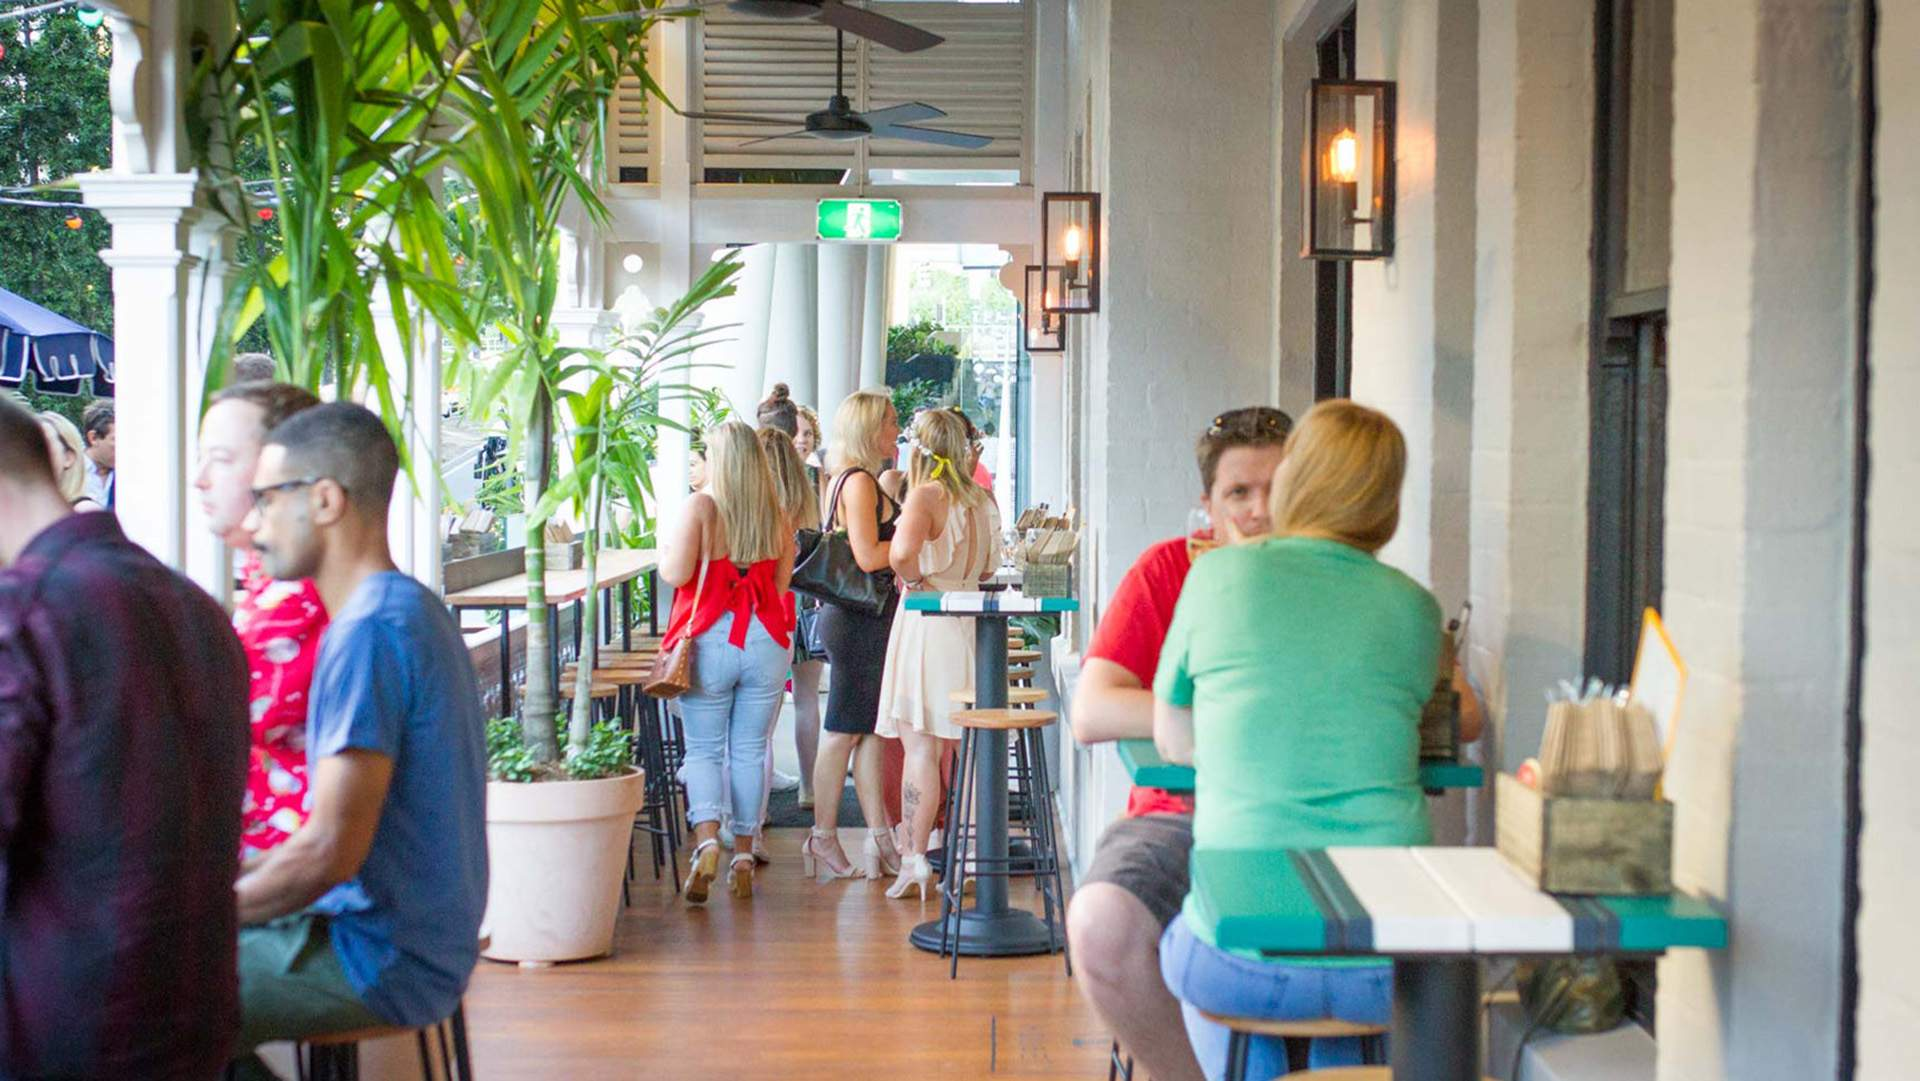 Queensland Has Tightened Restrictions for Pubs, Clubs and Hotels as Interstate COVID-19 Cases Grow